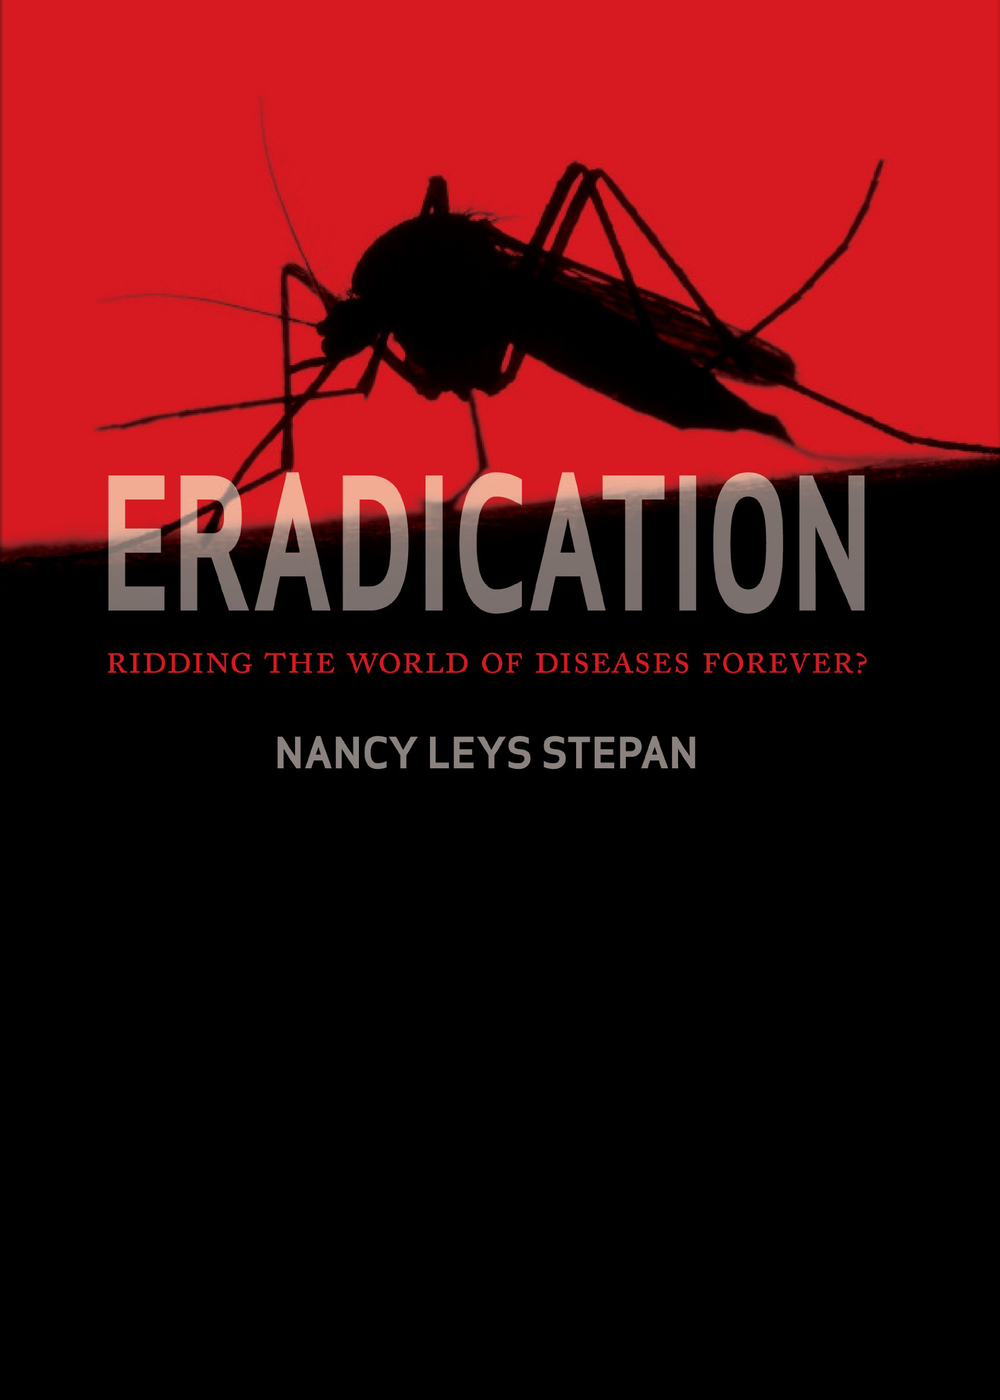 Stepan, Nancy - Eradication.jpg